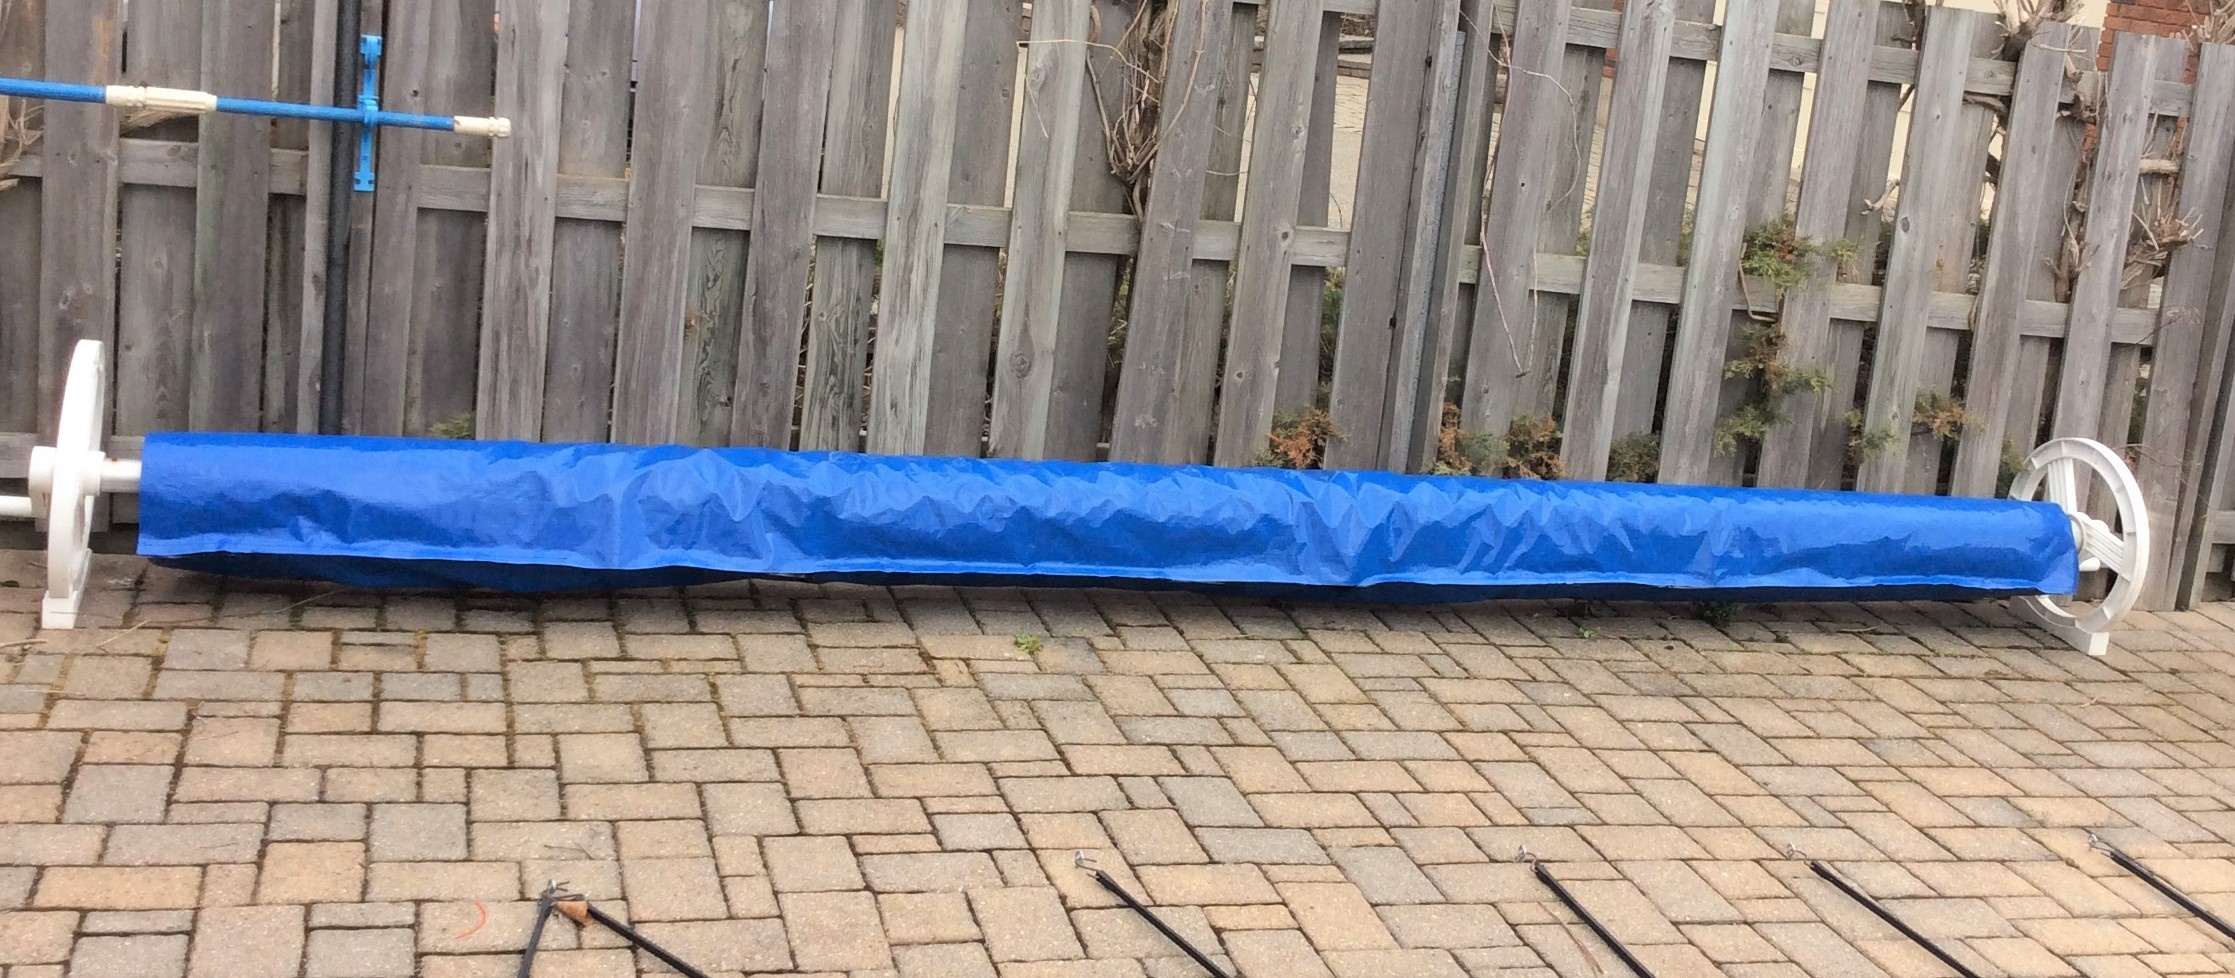 Solar Blanket Cover Protector